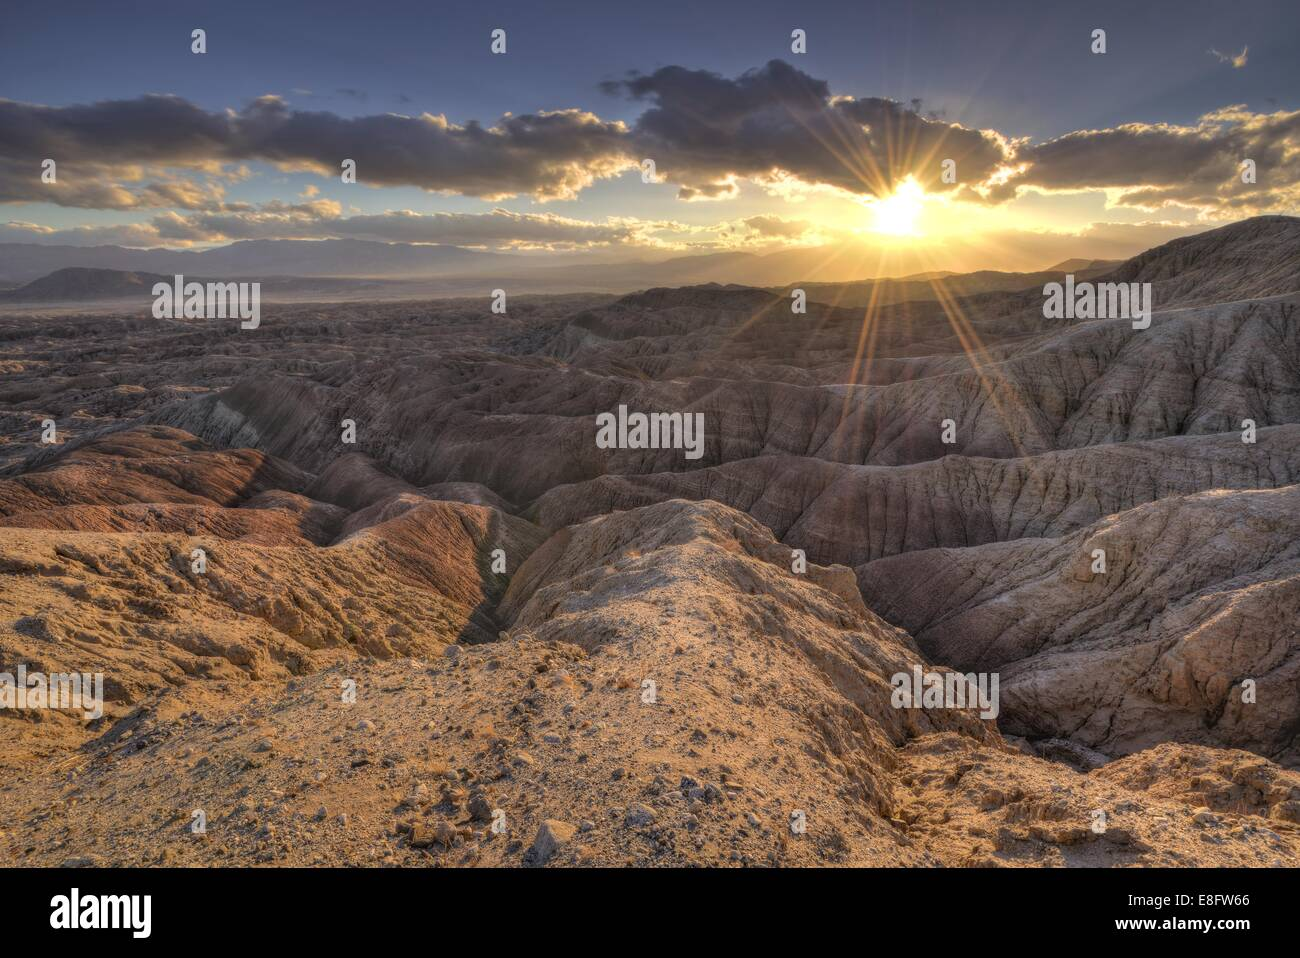 USA, California, Anza-Borrego Desert State Park, Sunset in Badlands - Stock Image